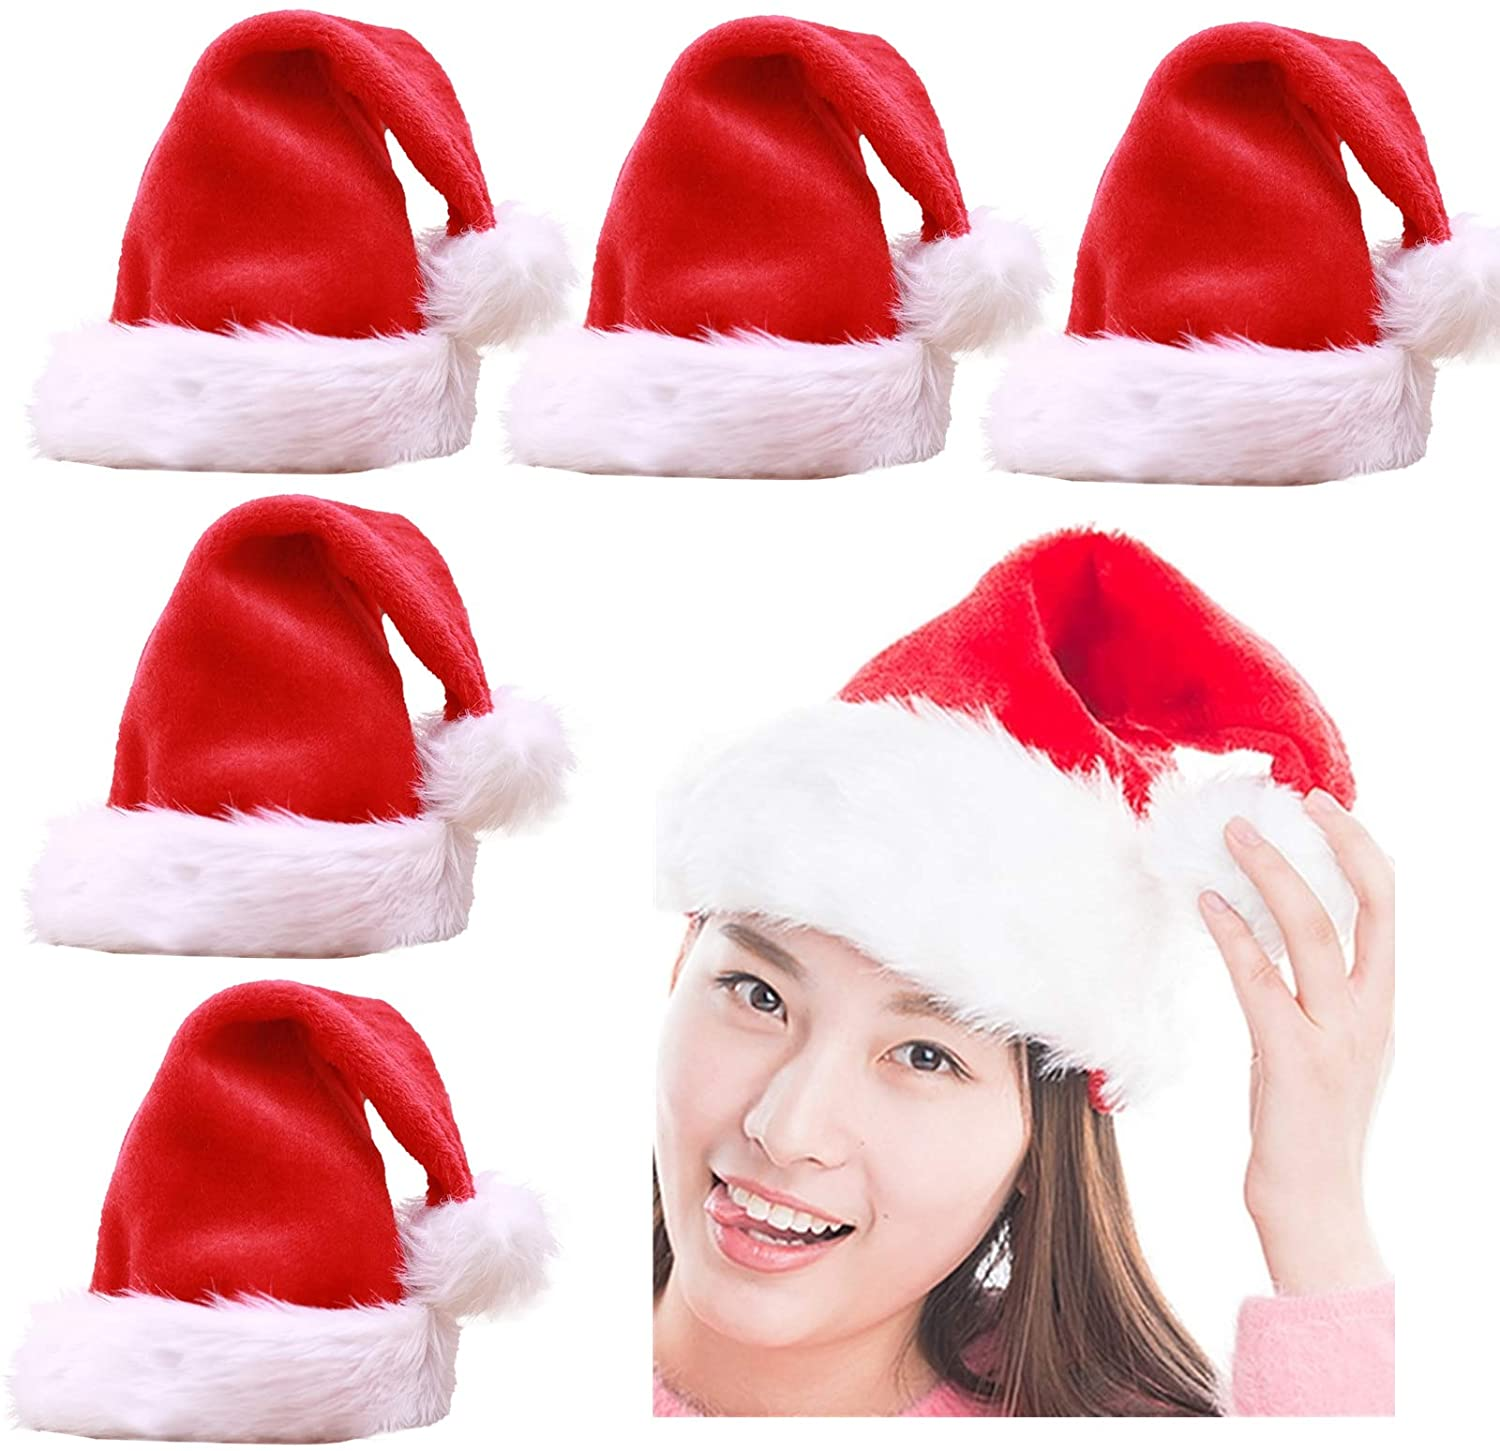 Yopay 6 Pack Santa Hat, Unisex-Adult's Christmas Holiday Hat, Double Liner Velvet Comfort Christmas Party Hats with Plush Trim and Comfort Liner